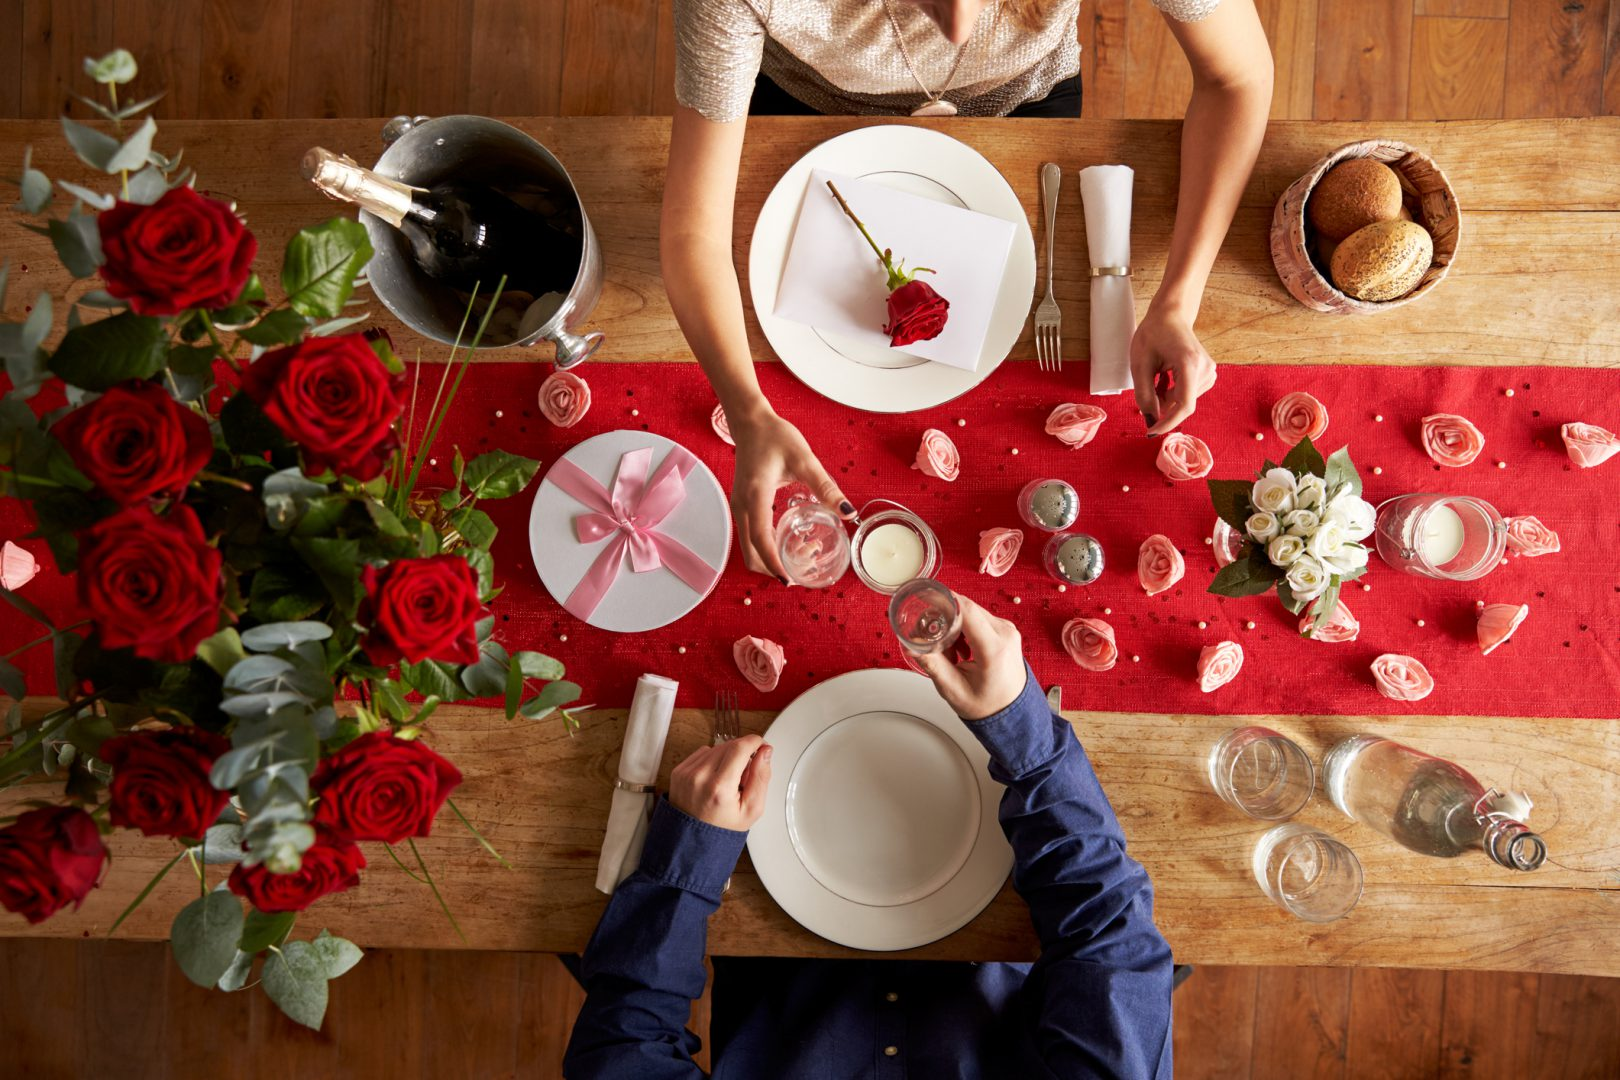 Overhead View Of Romantic Couple At Valentines Day Meal